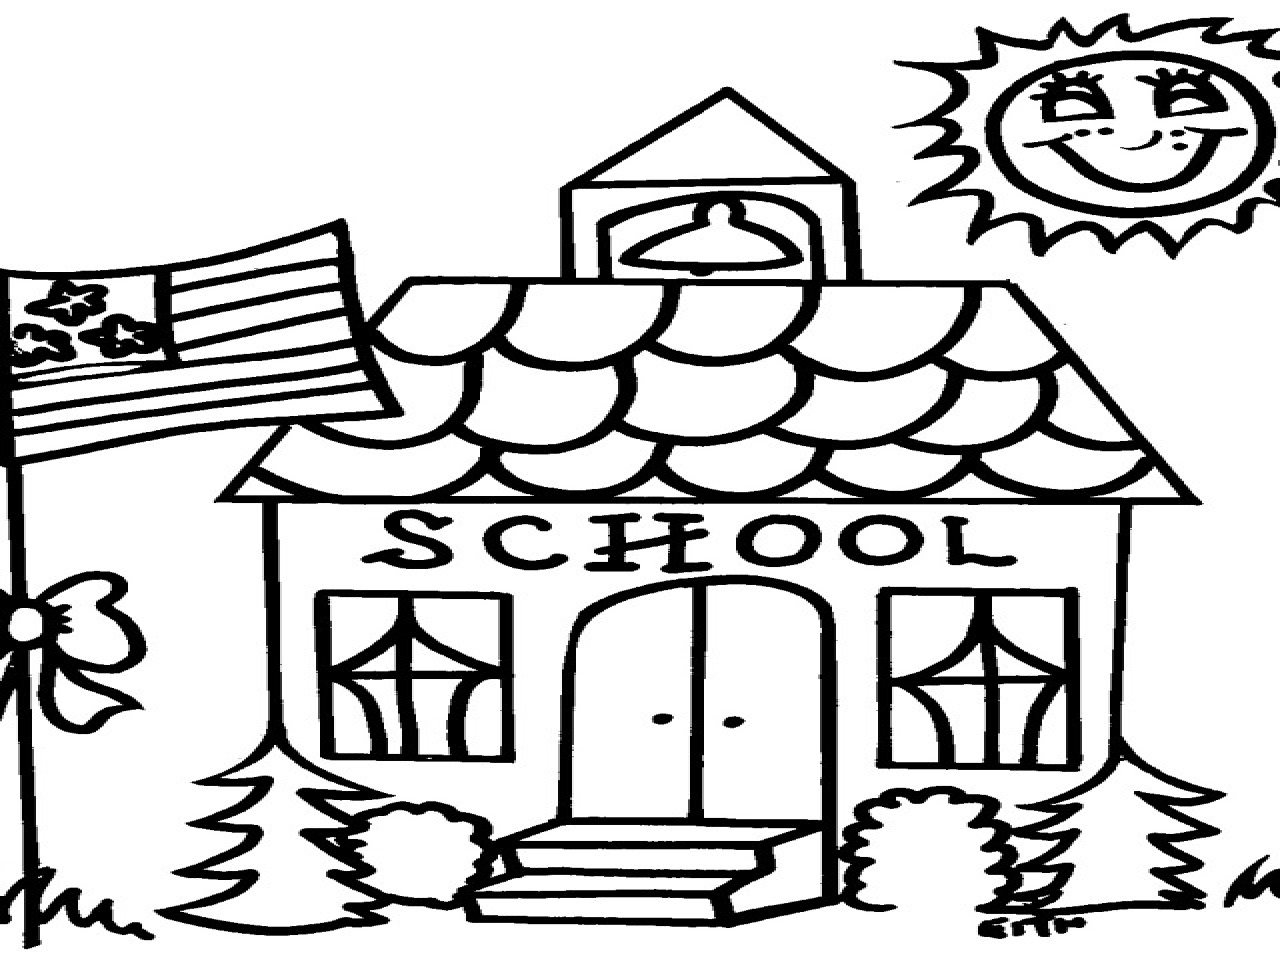 Schoolhouse Coloring Pages Printables School House Page Grig3 ...